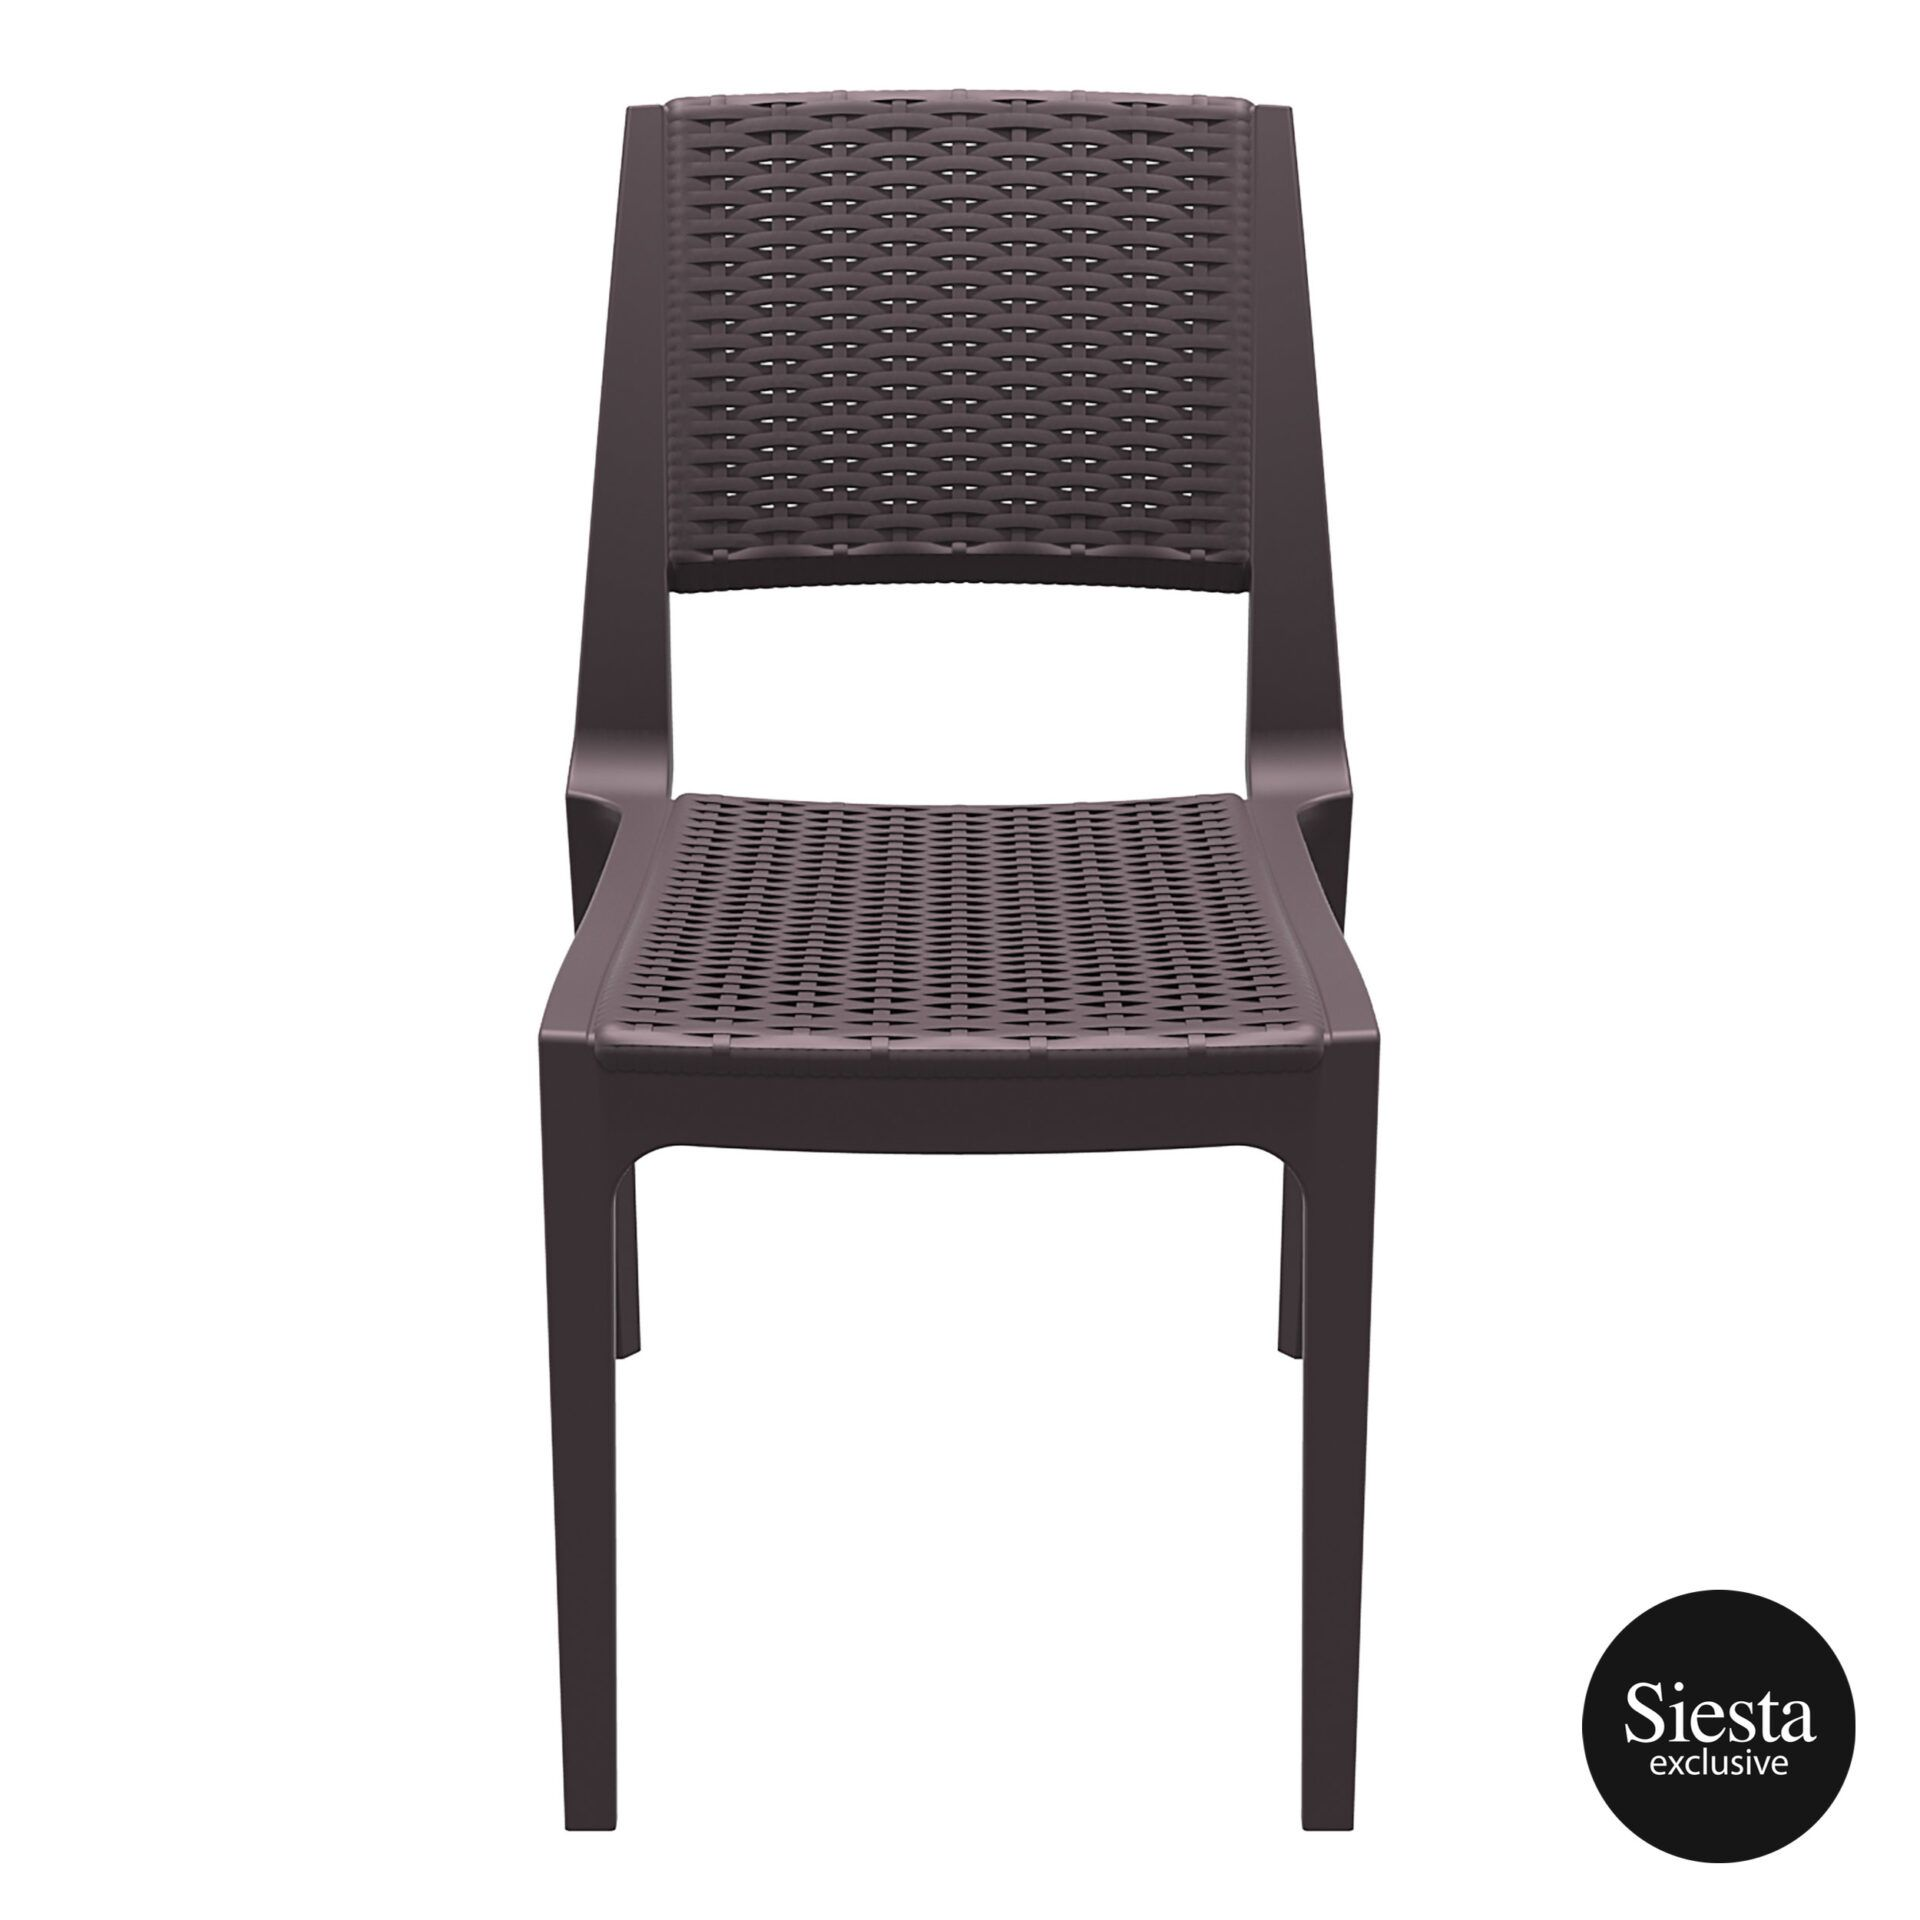 resin rattan outdoor cafe verona chair brown front 1